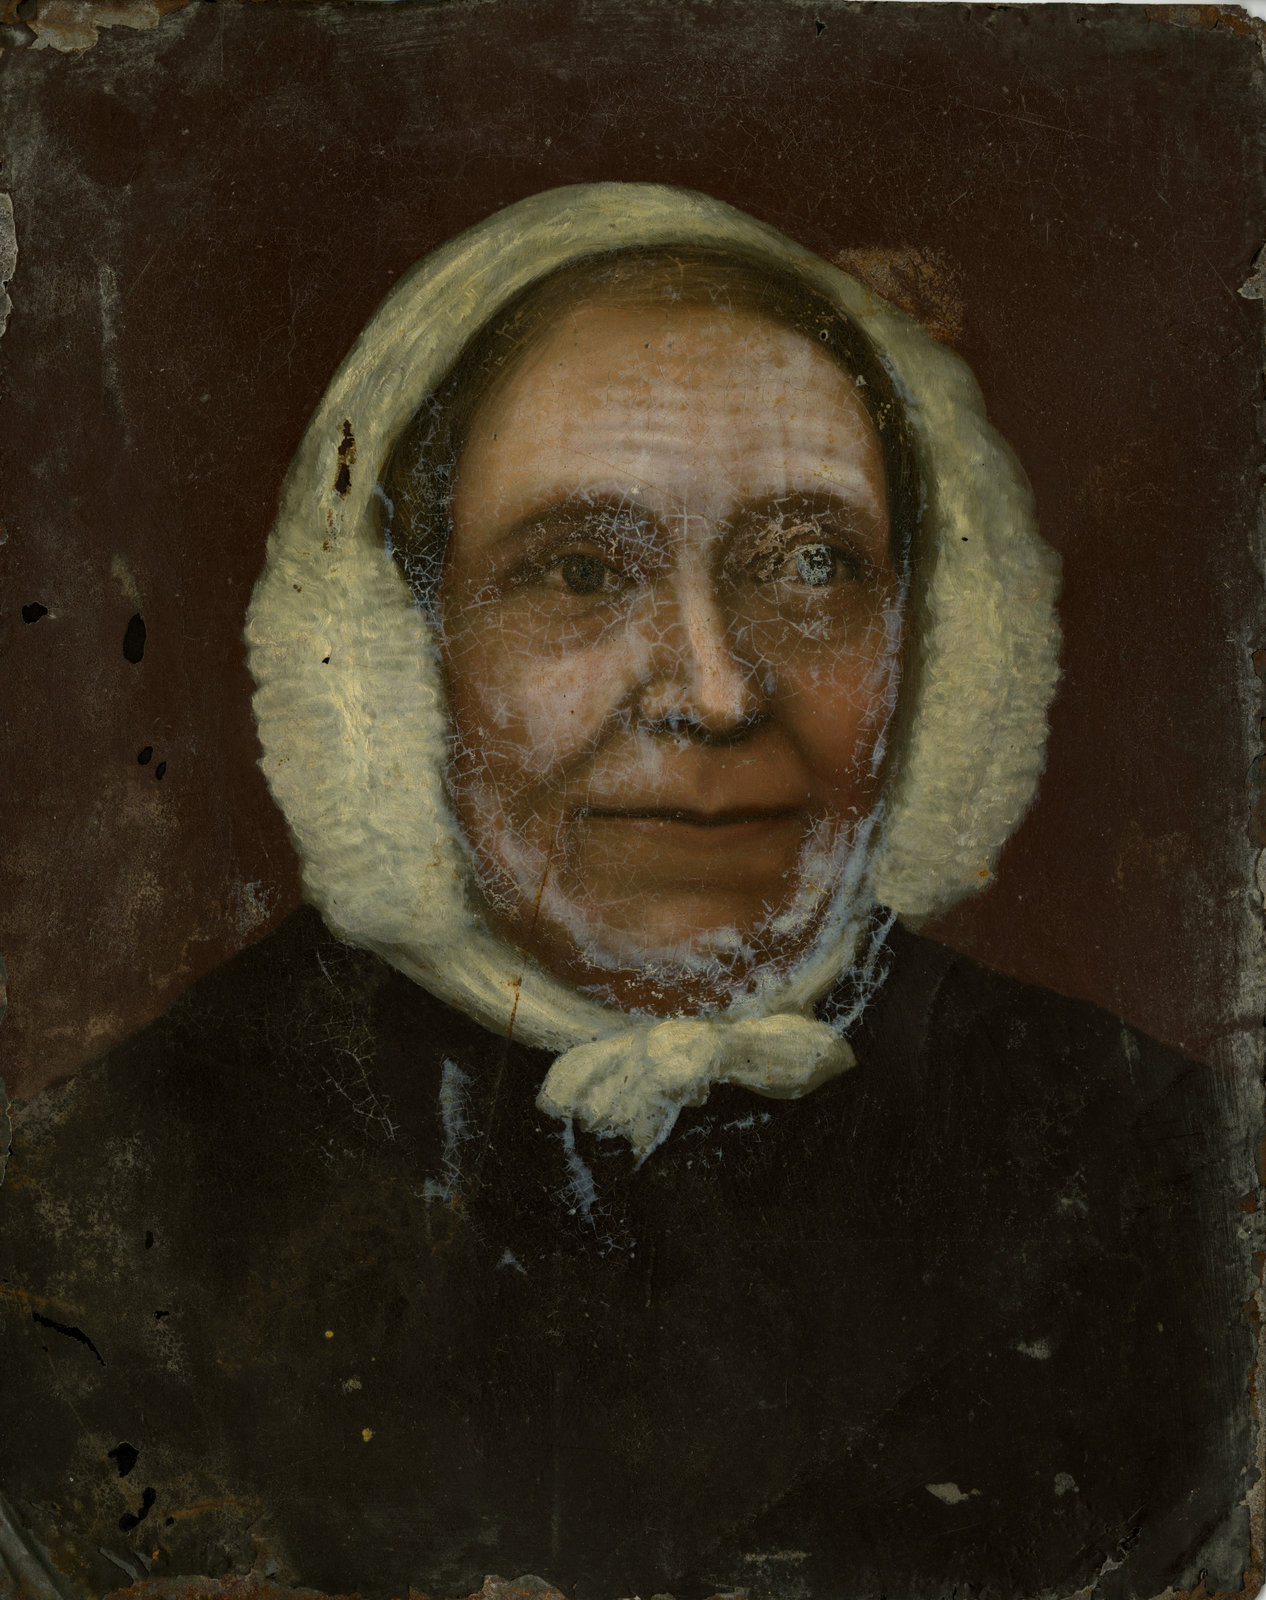 Bust portrait of unidentified woman wearing a dark bodice and white house-bonnet.